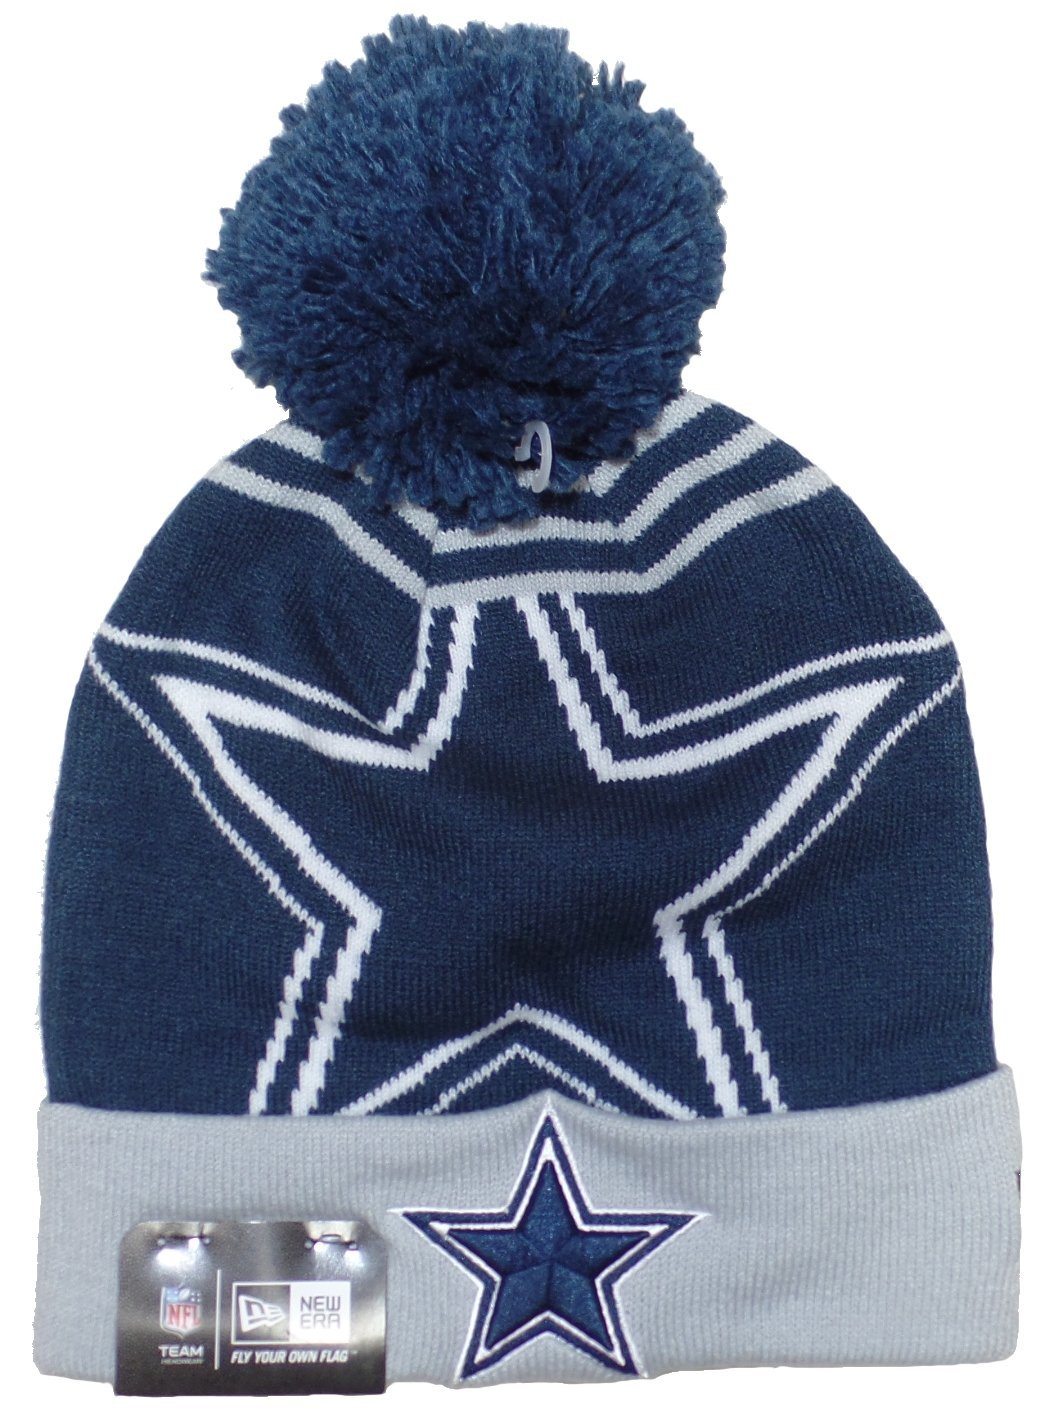 4062343040943 Get Quotations · Dallas Cowboys New Era Logo Wiz Knit Hat